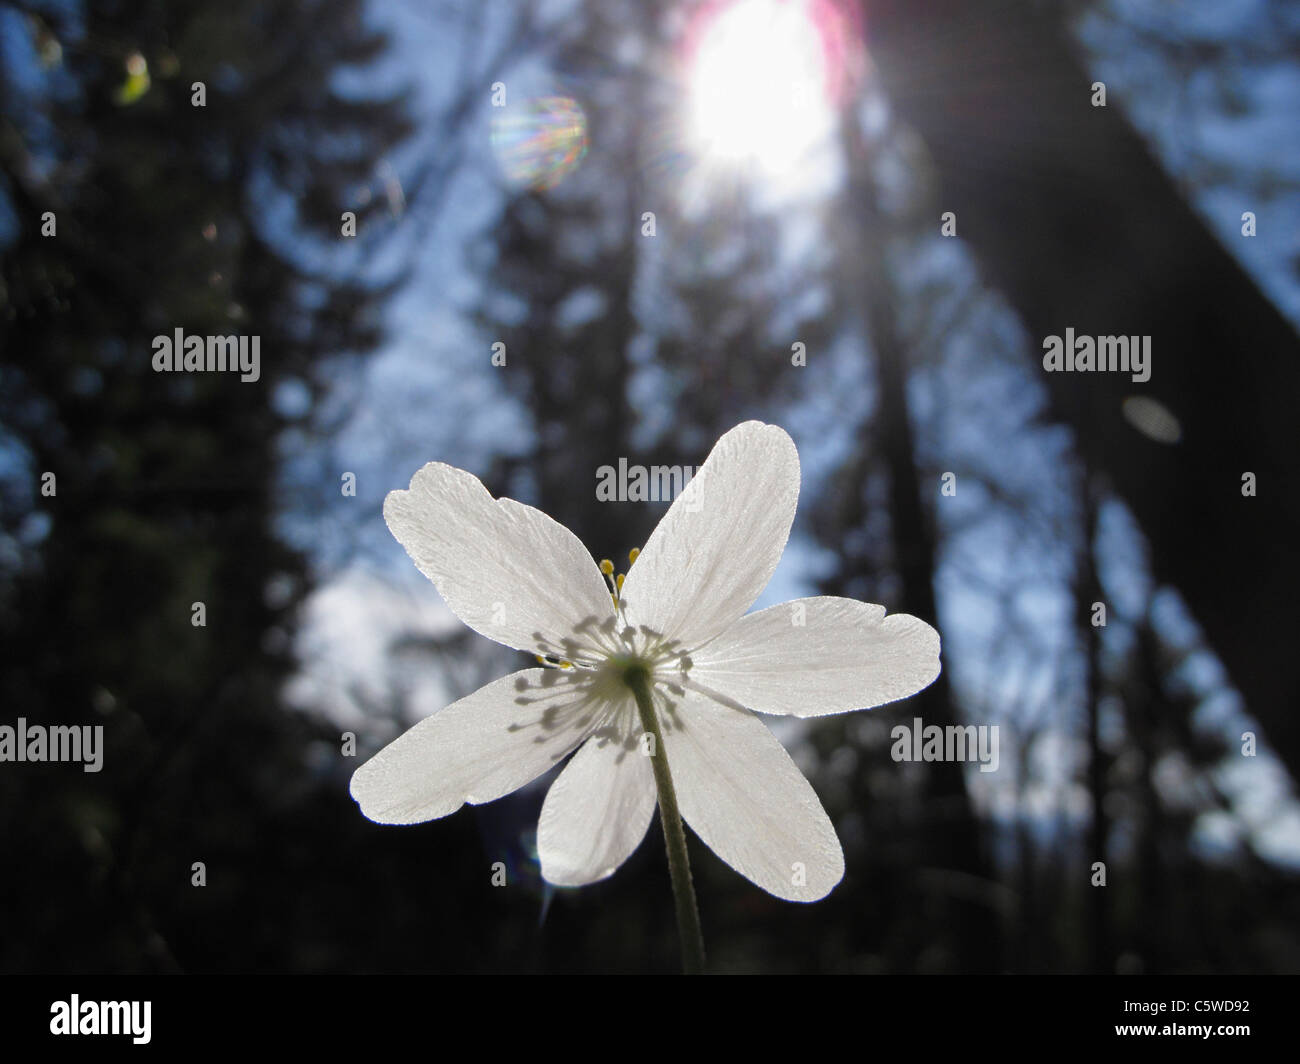 Germany, Bavaria, Close up of wood anemone flower with lens flare - Stock Image